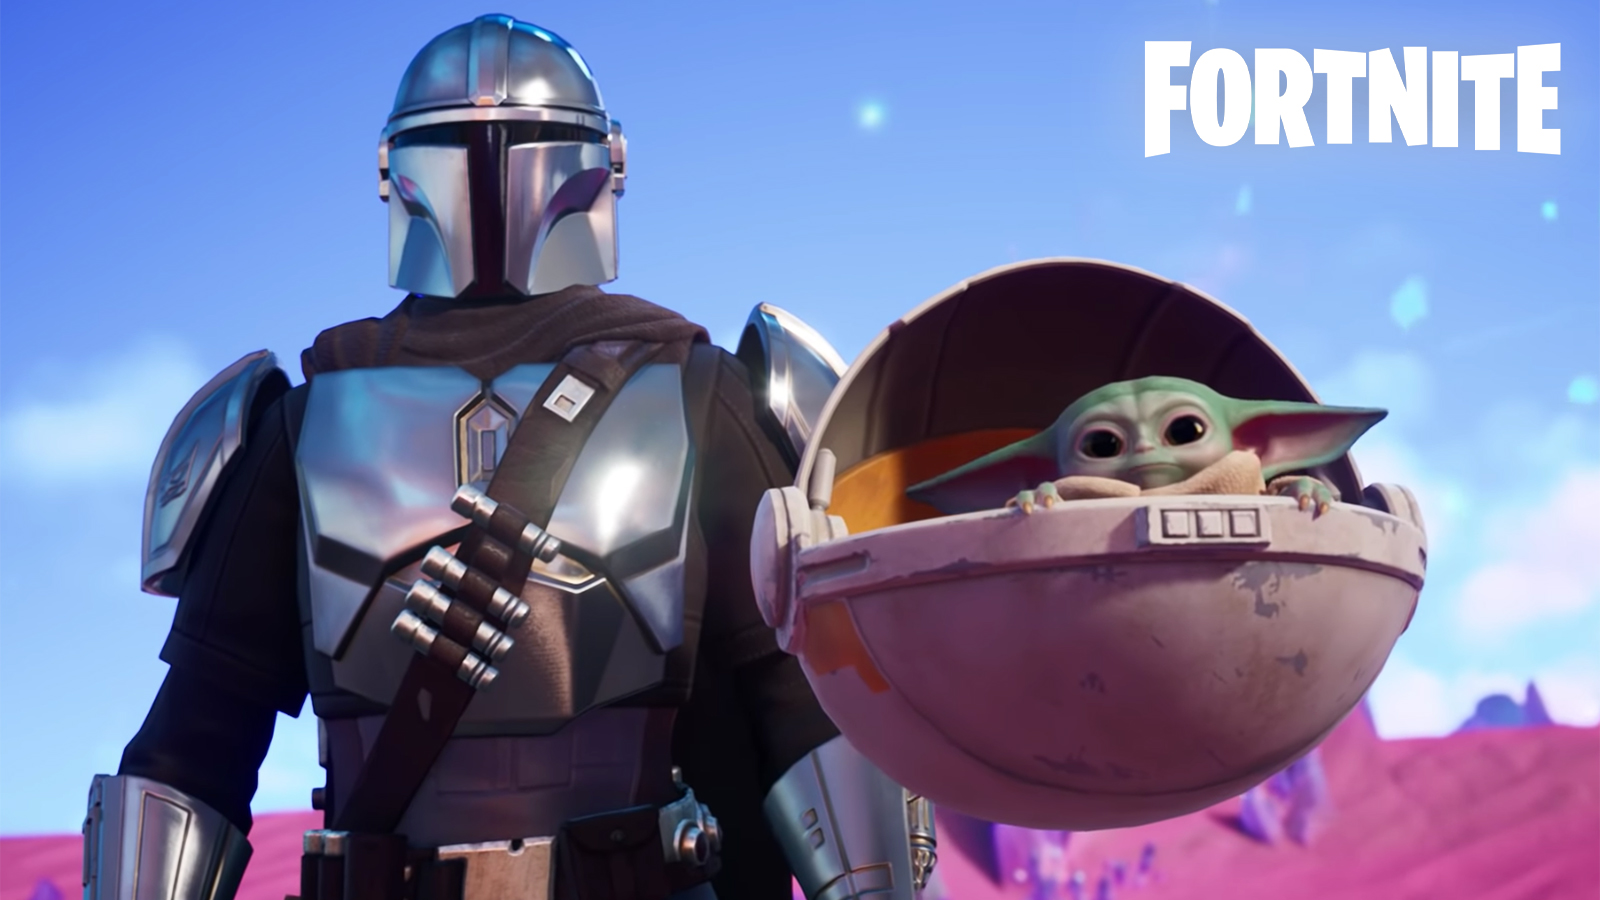 Mandalorian and Baby Yoda in Fortnite